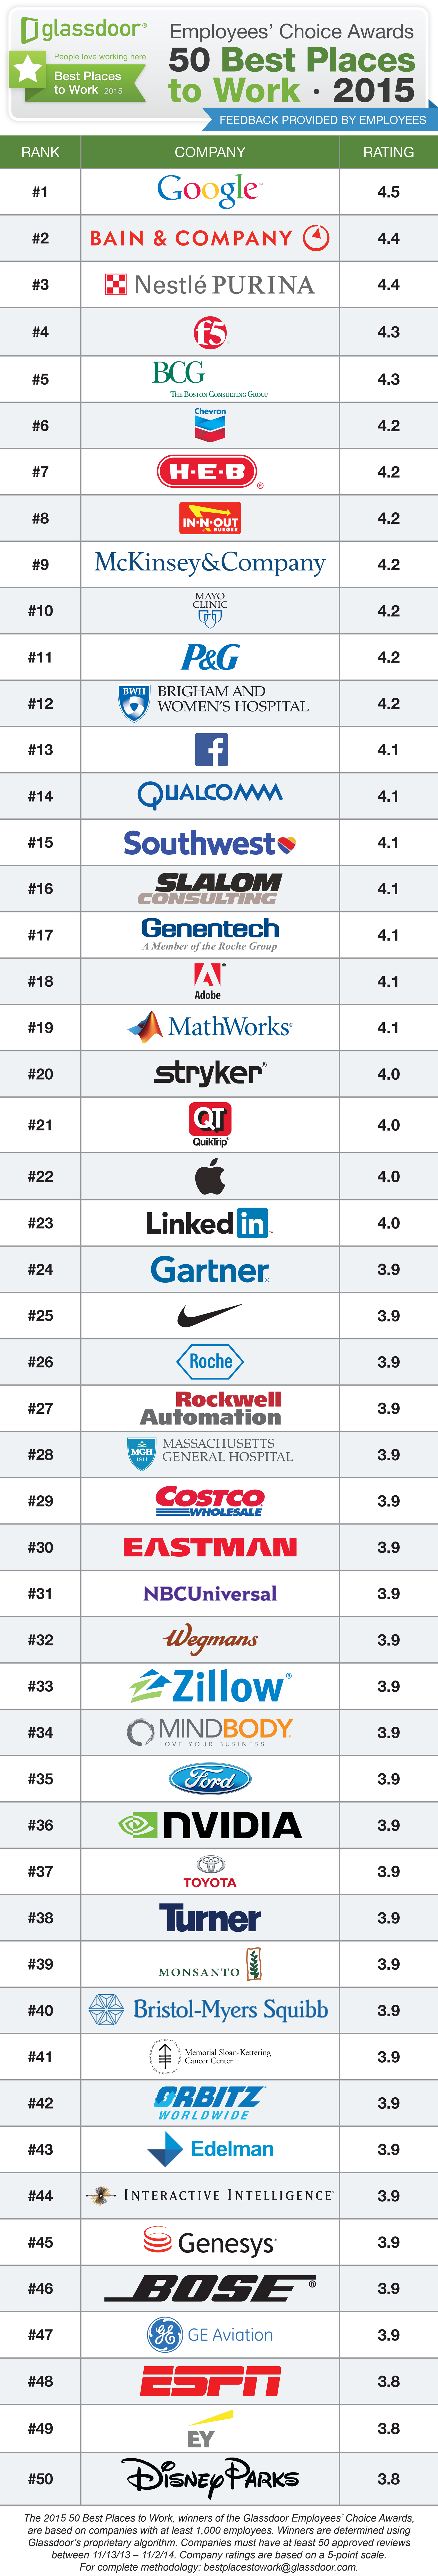 GD Best Places to Work 2015 COMPLETE RESULTS